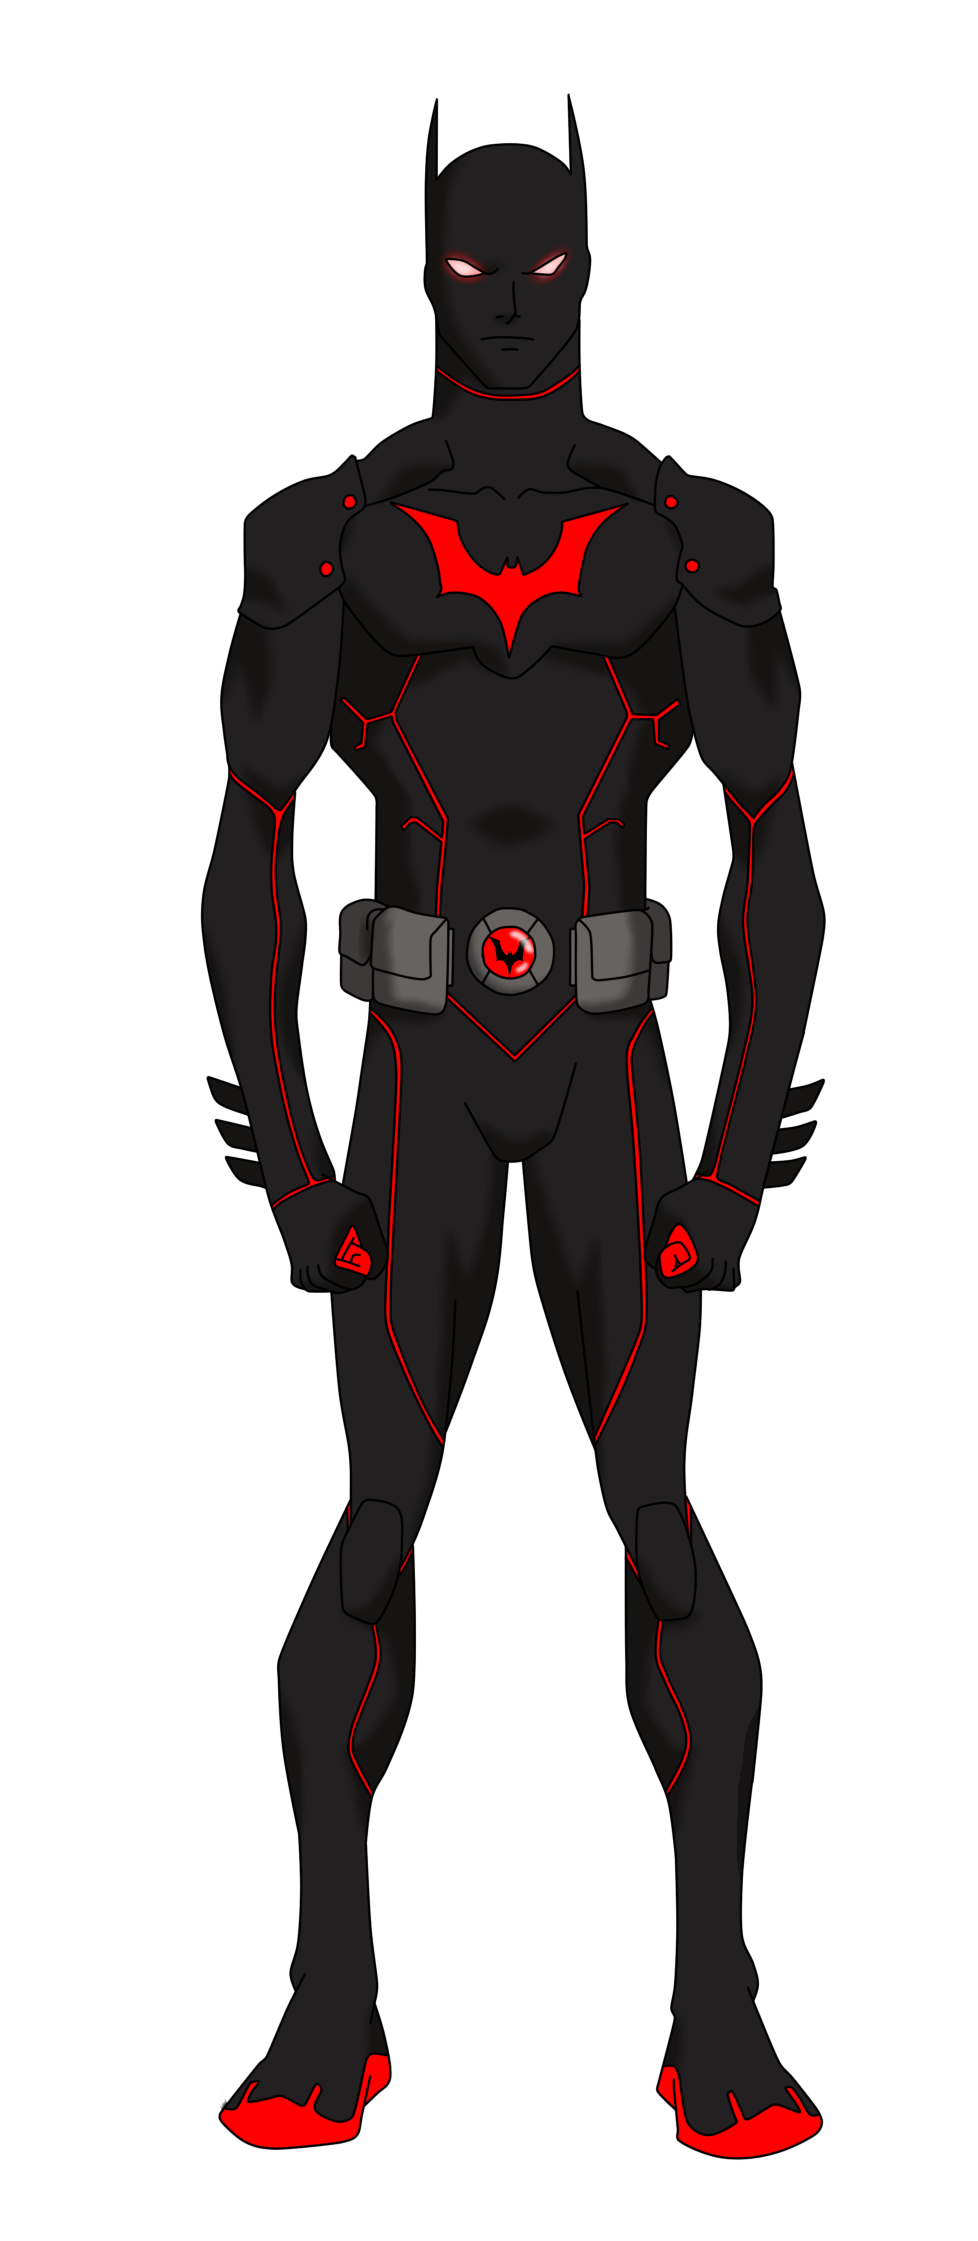 Batman beyond yj styled by bobkitty23 on deviantart